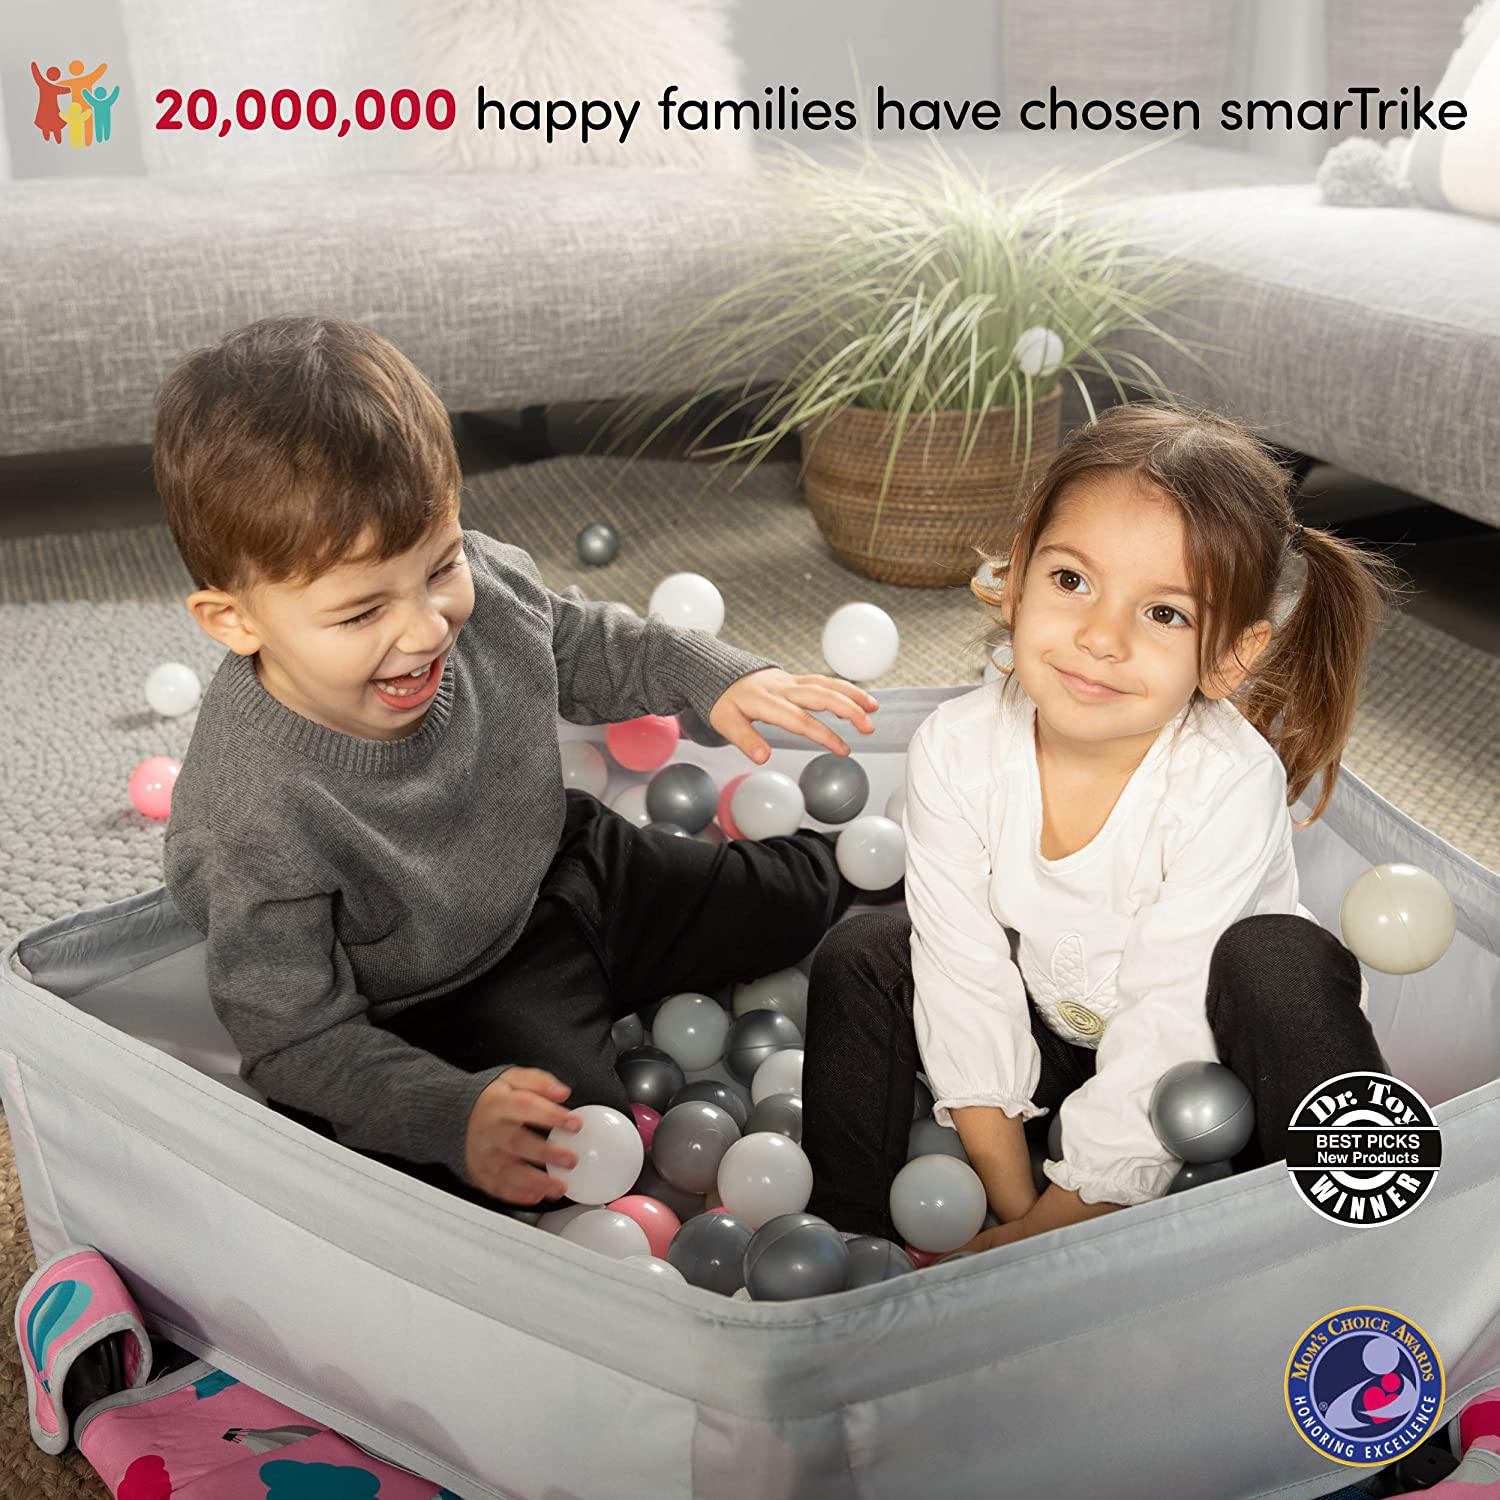 Foldable Kids Trampoline smarTrike 9200000 Indoor Toddler Trampoline with Handle Ball Pit with 100 Balls Included 1-5 Years